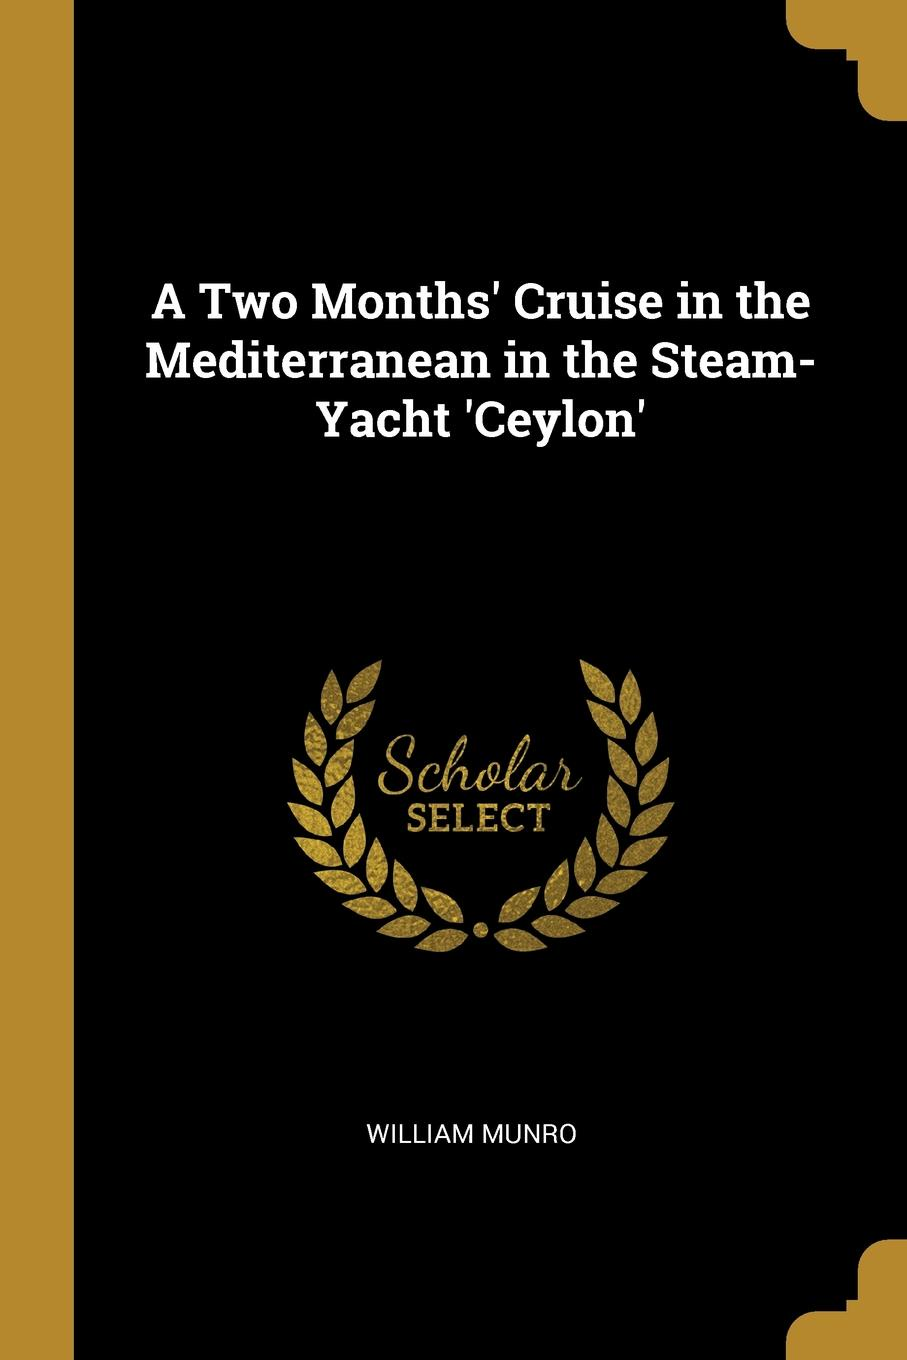 William Munro. A Two Months. Cruise in the Mediterranean in the Steam-Yacht .Ceylon.